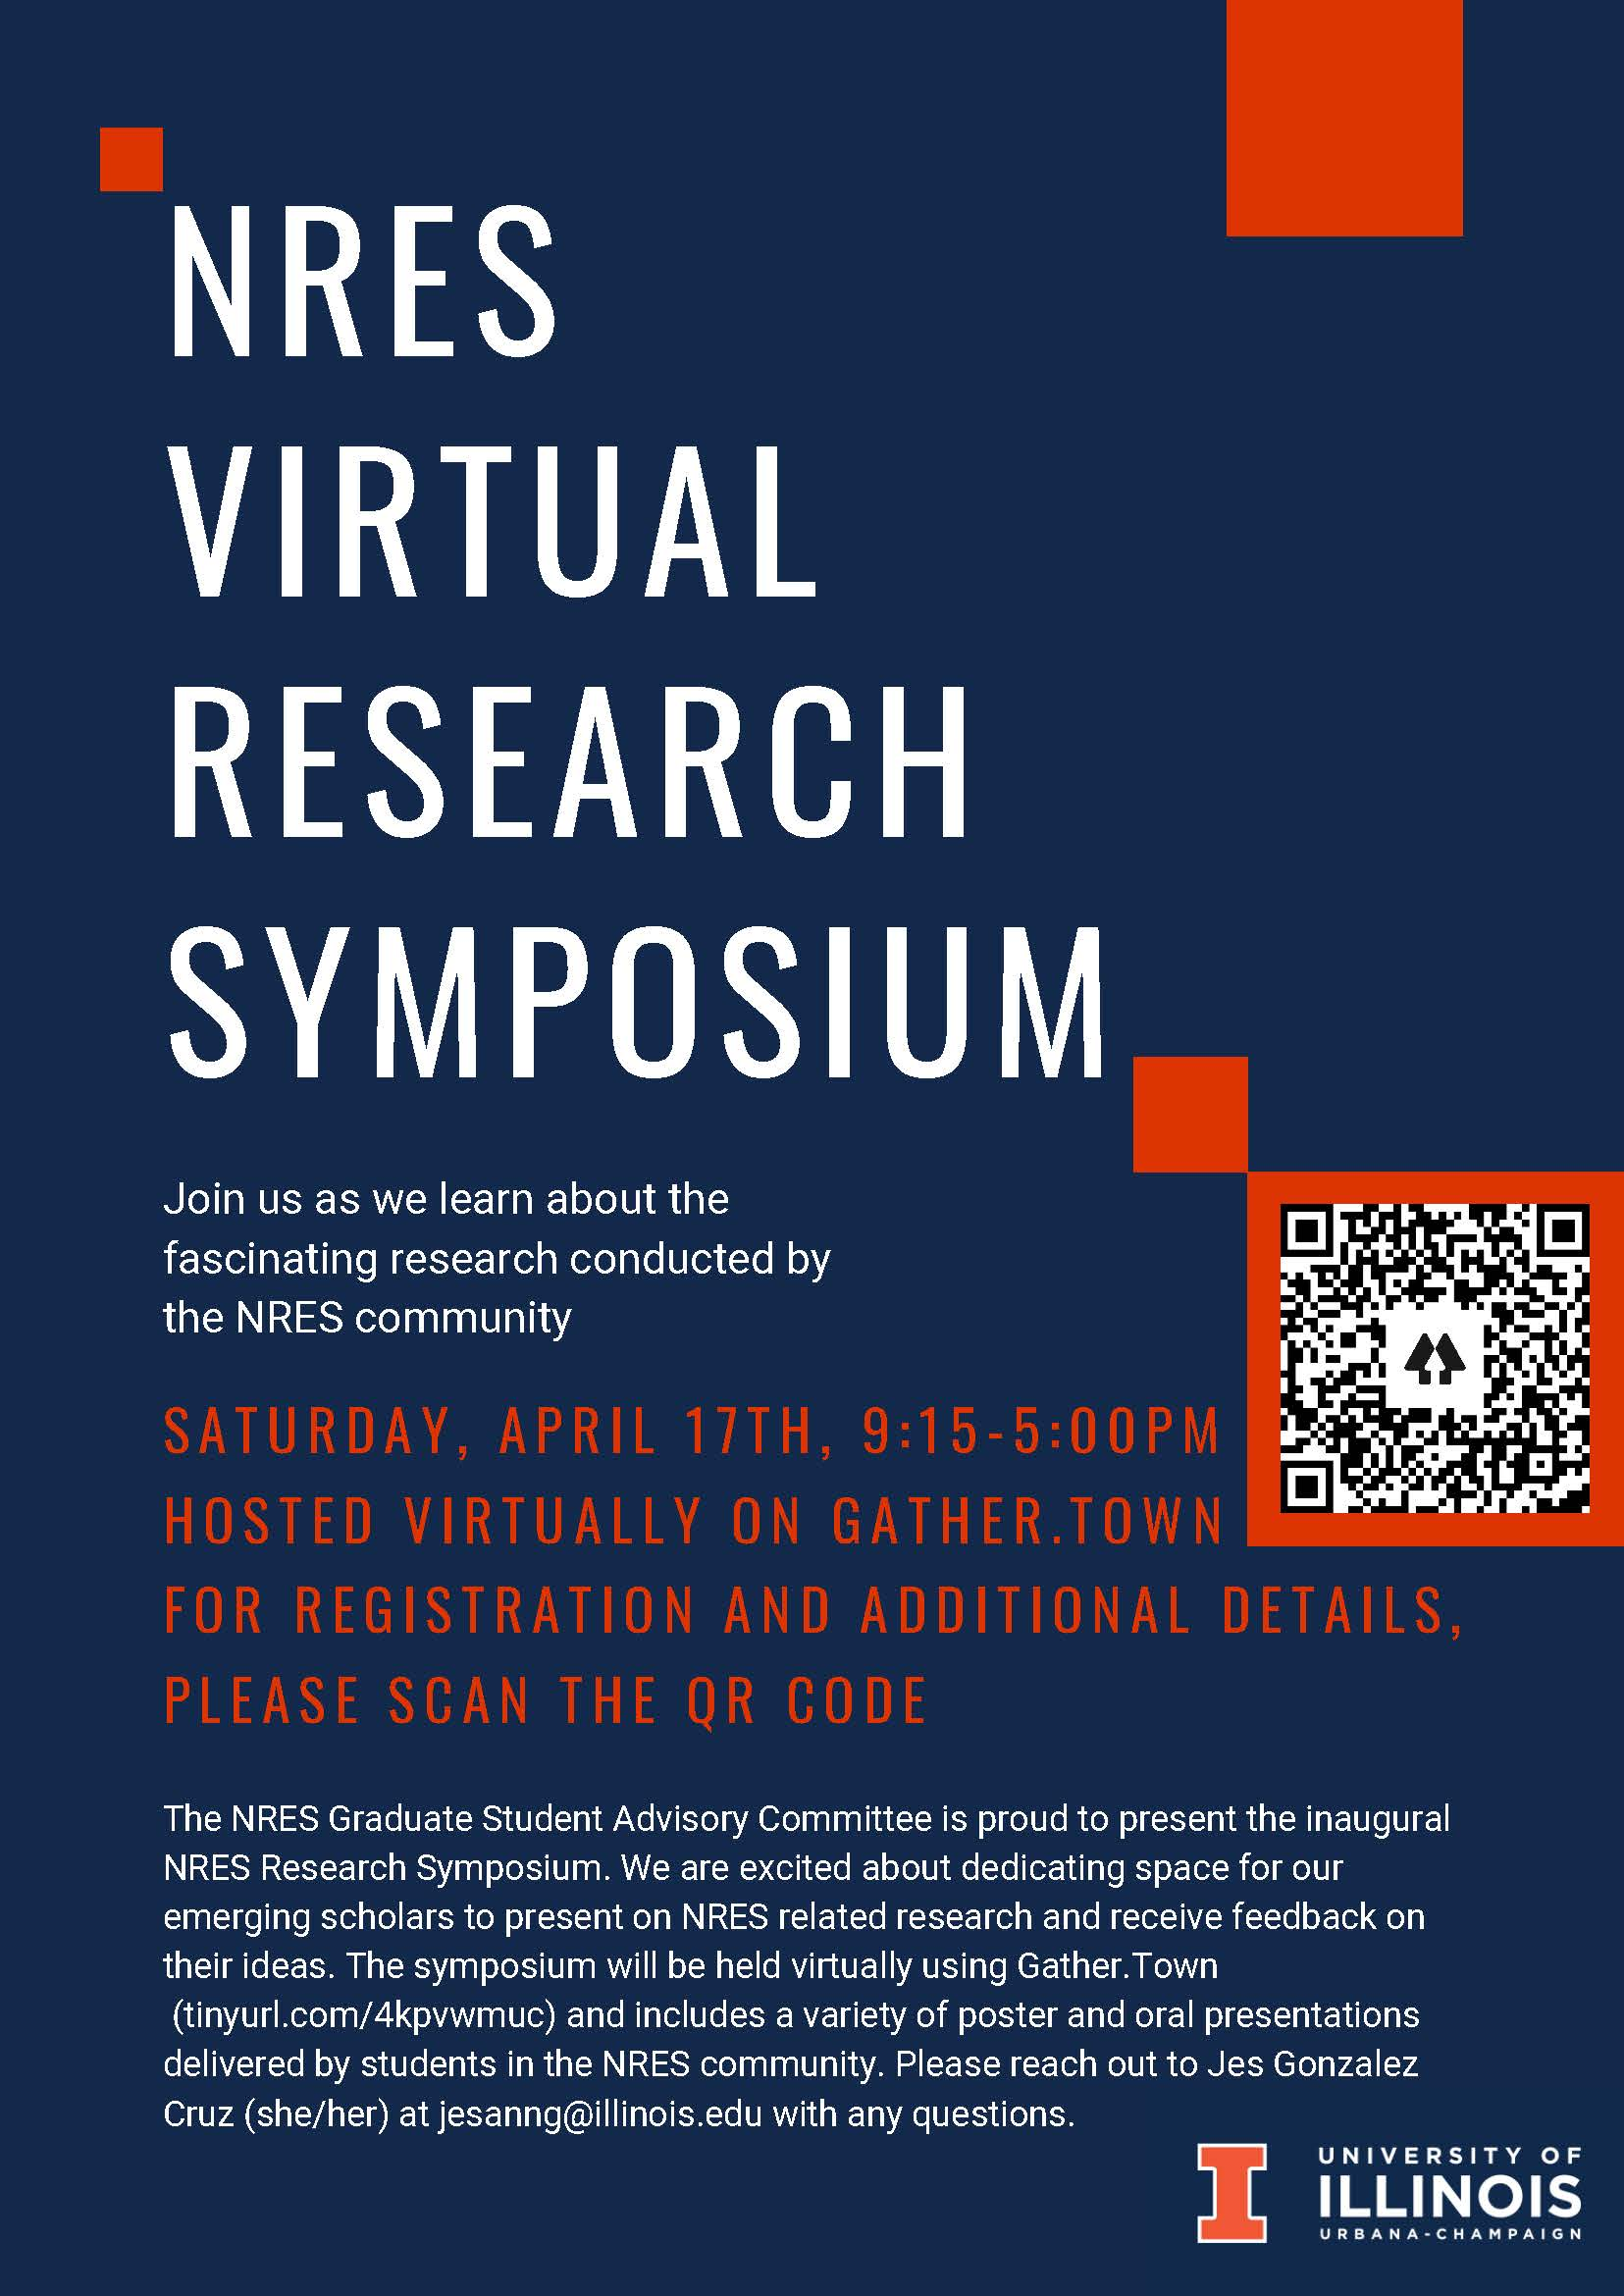 Flyer for NRES Virtual Research Symposium. Register at https://linktr.ee/UofI_NRES